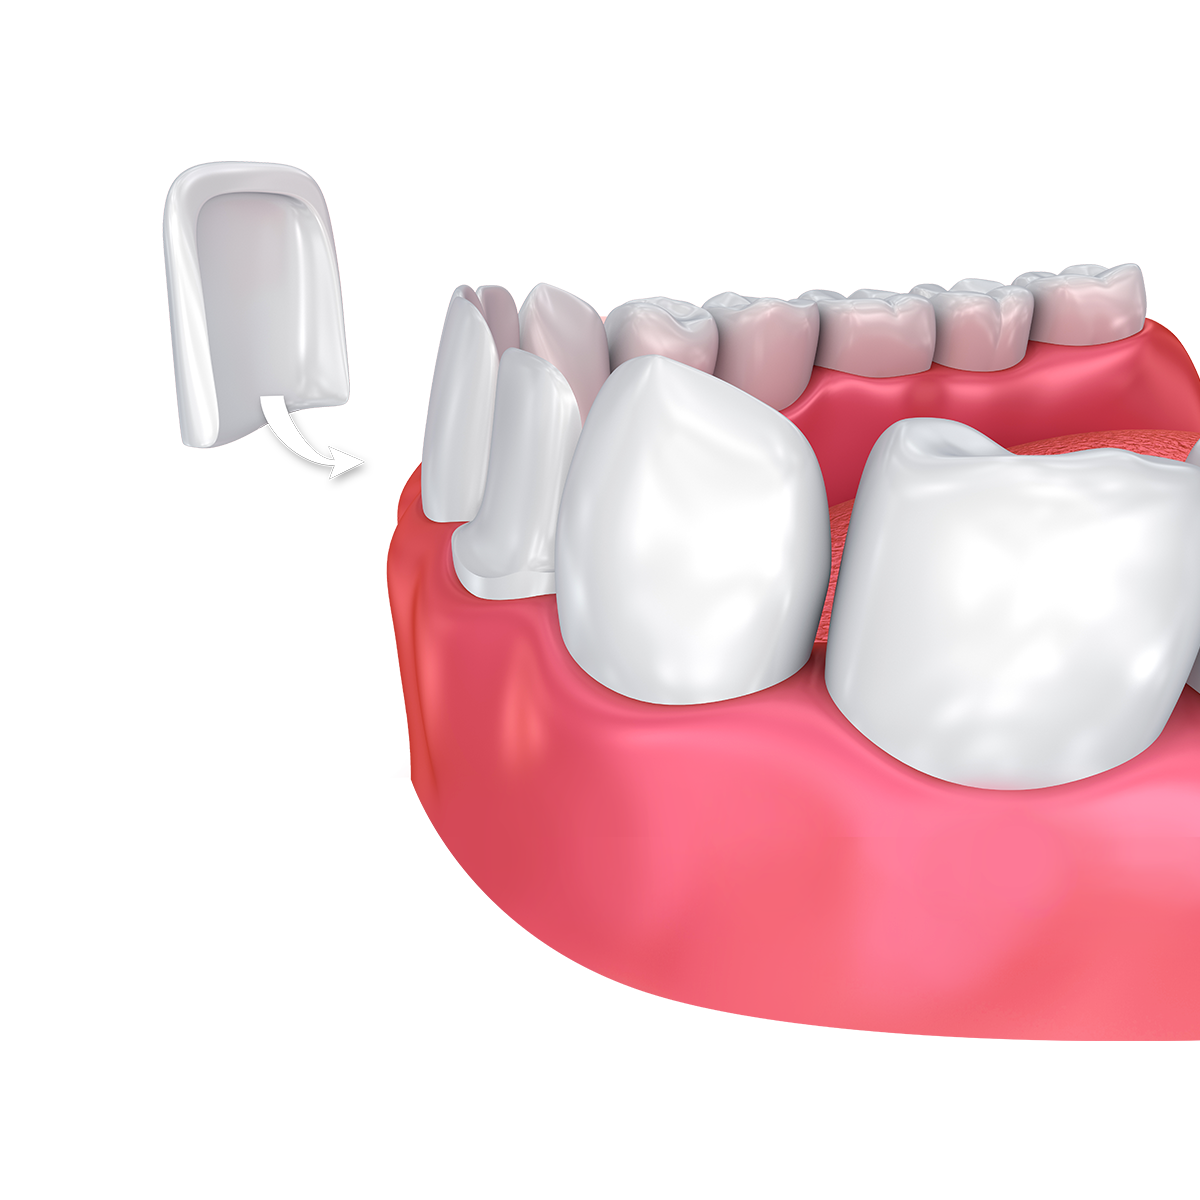 Digital image of porcelain veneer placement